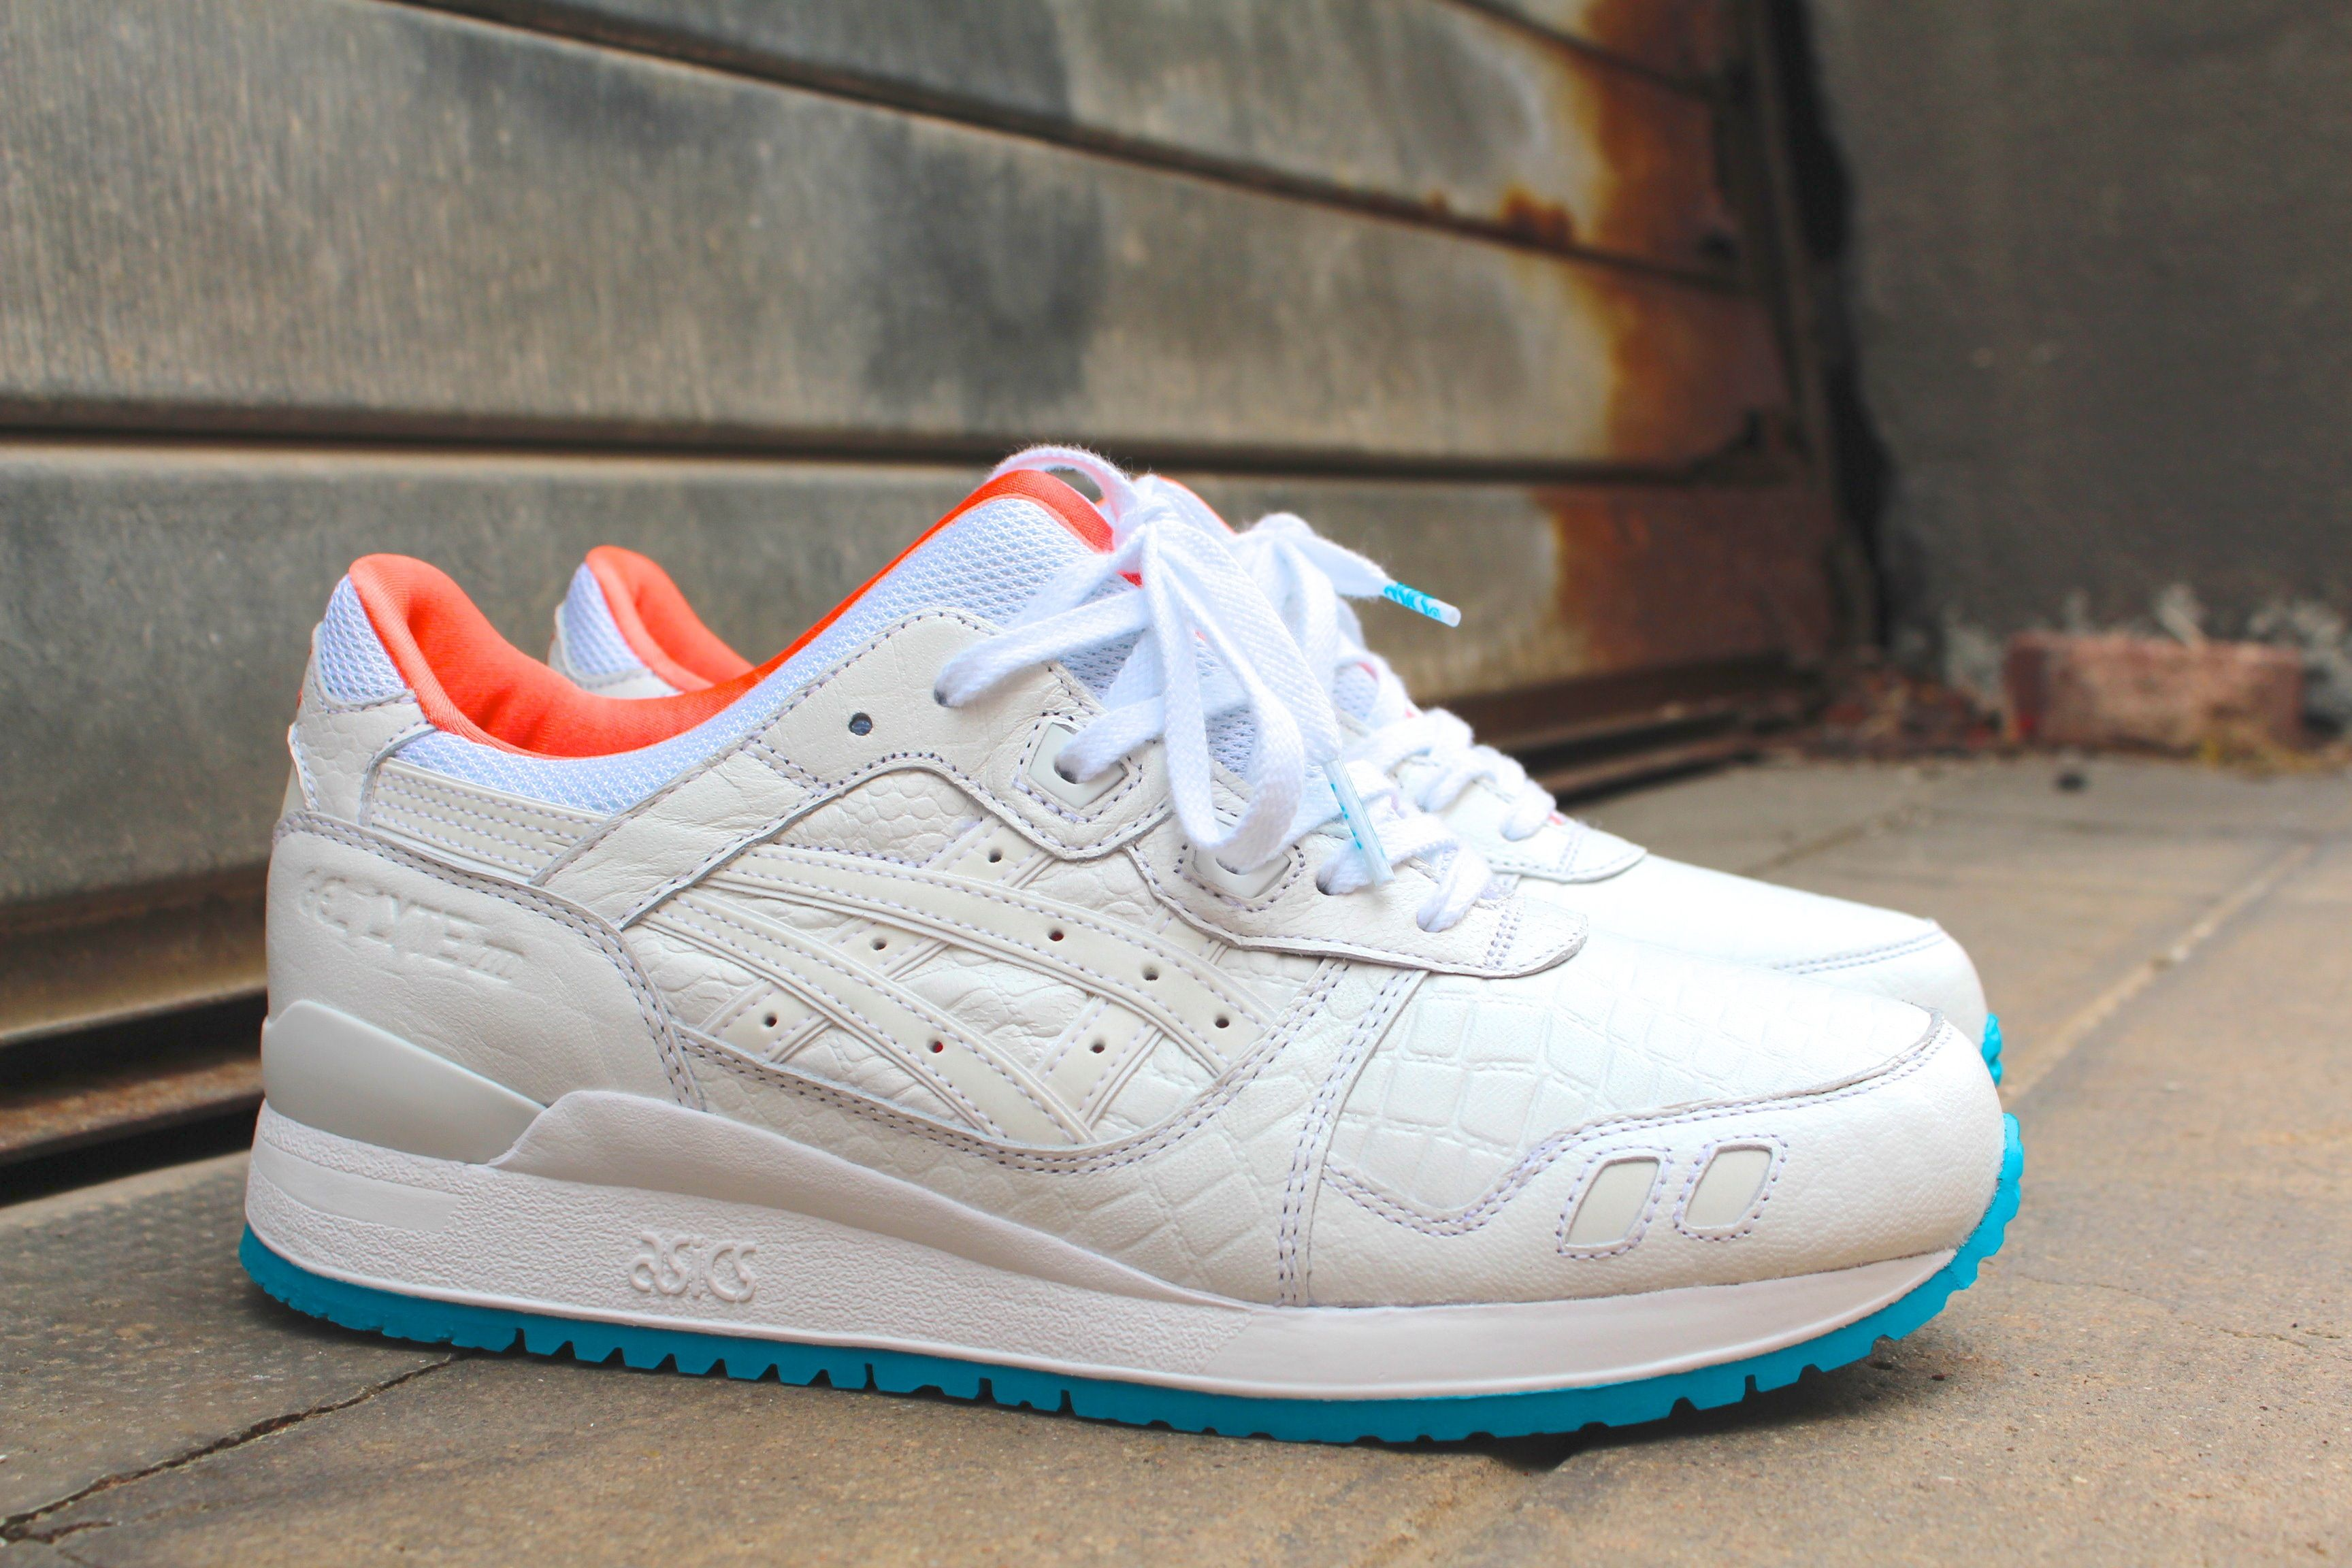 Women Men Asics Gel Lyte Iii Miami Vice Pack Sneaker